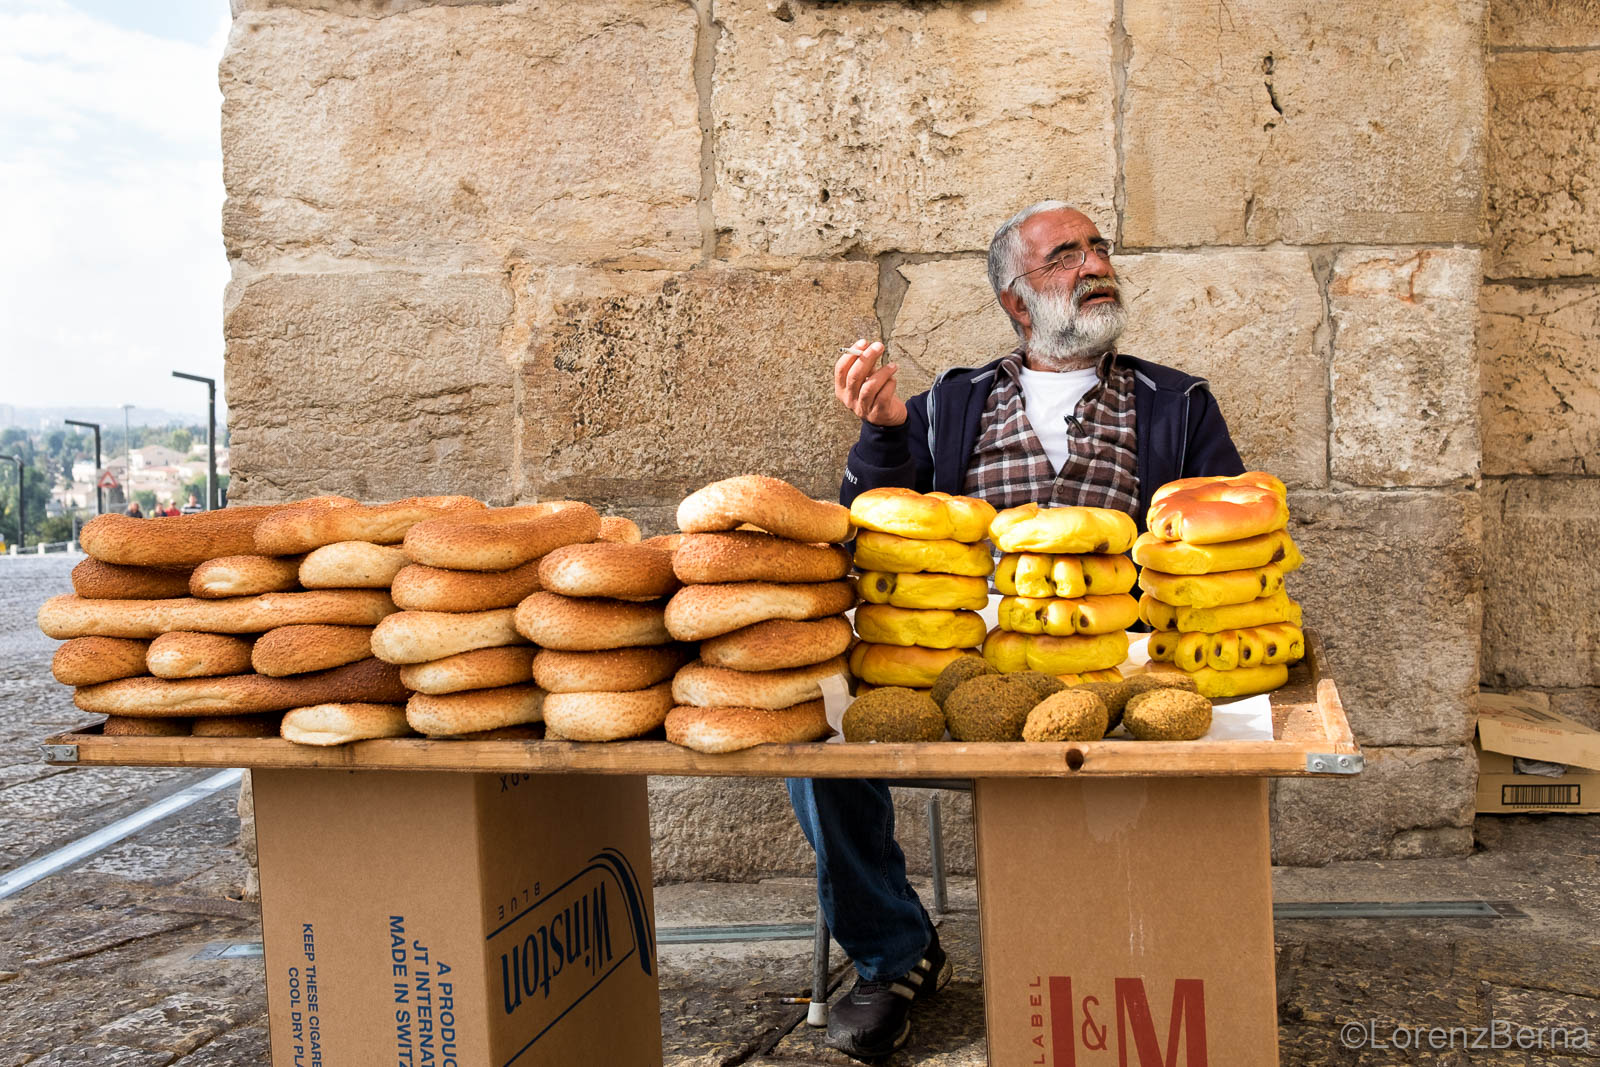 Palestinian street food near Jaffa gate - Jerusalem Street Photography